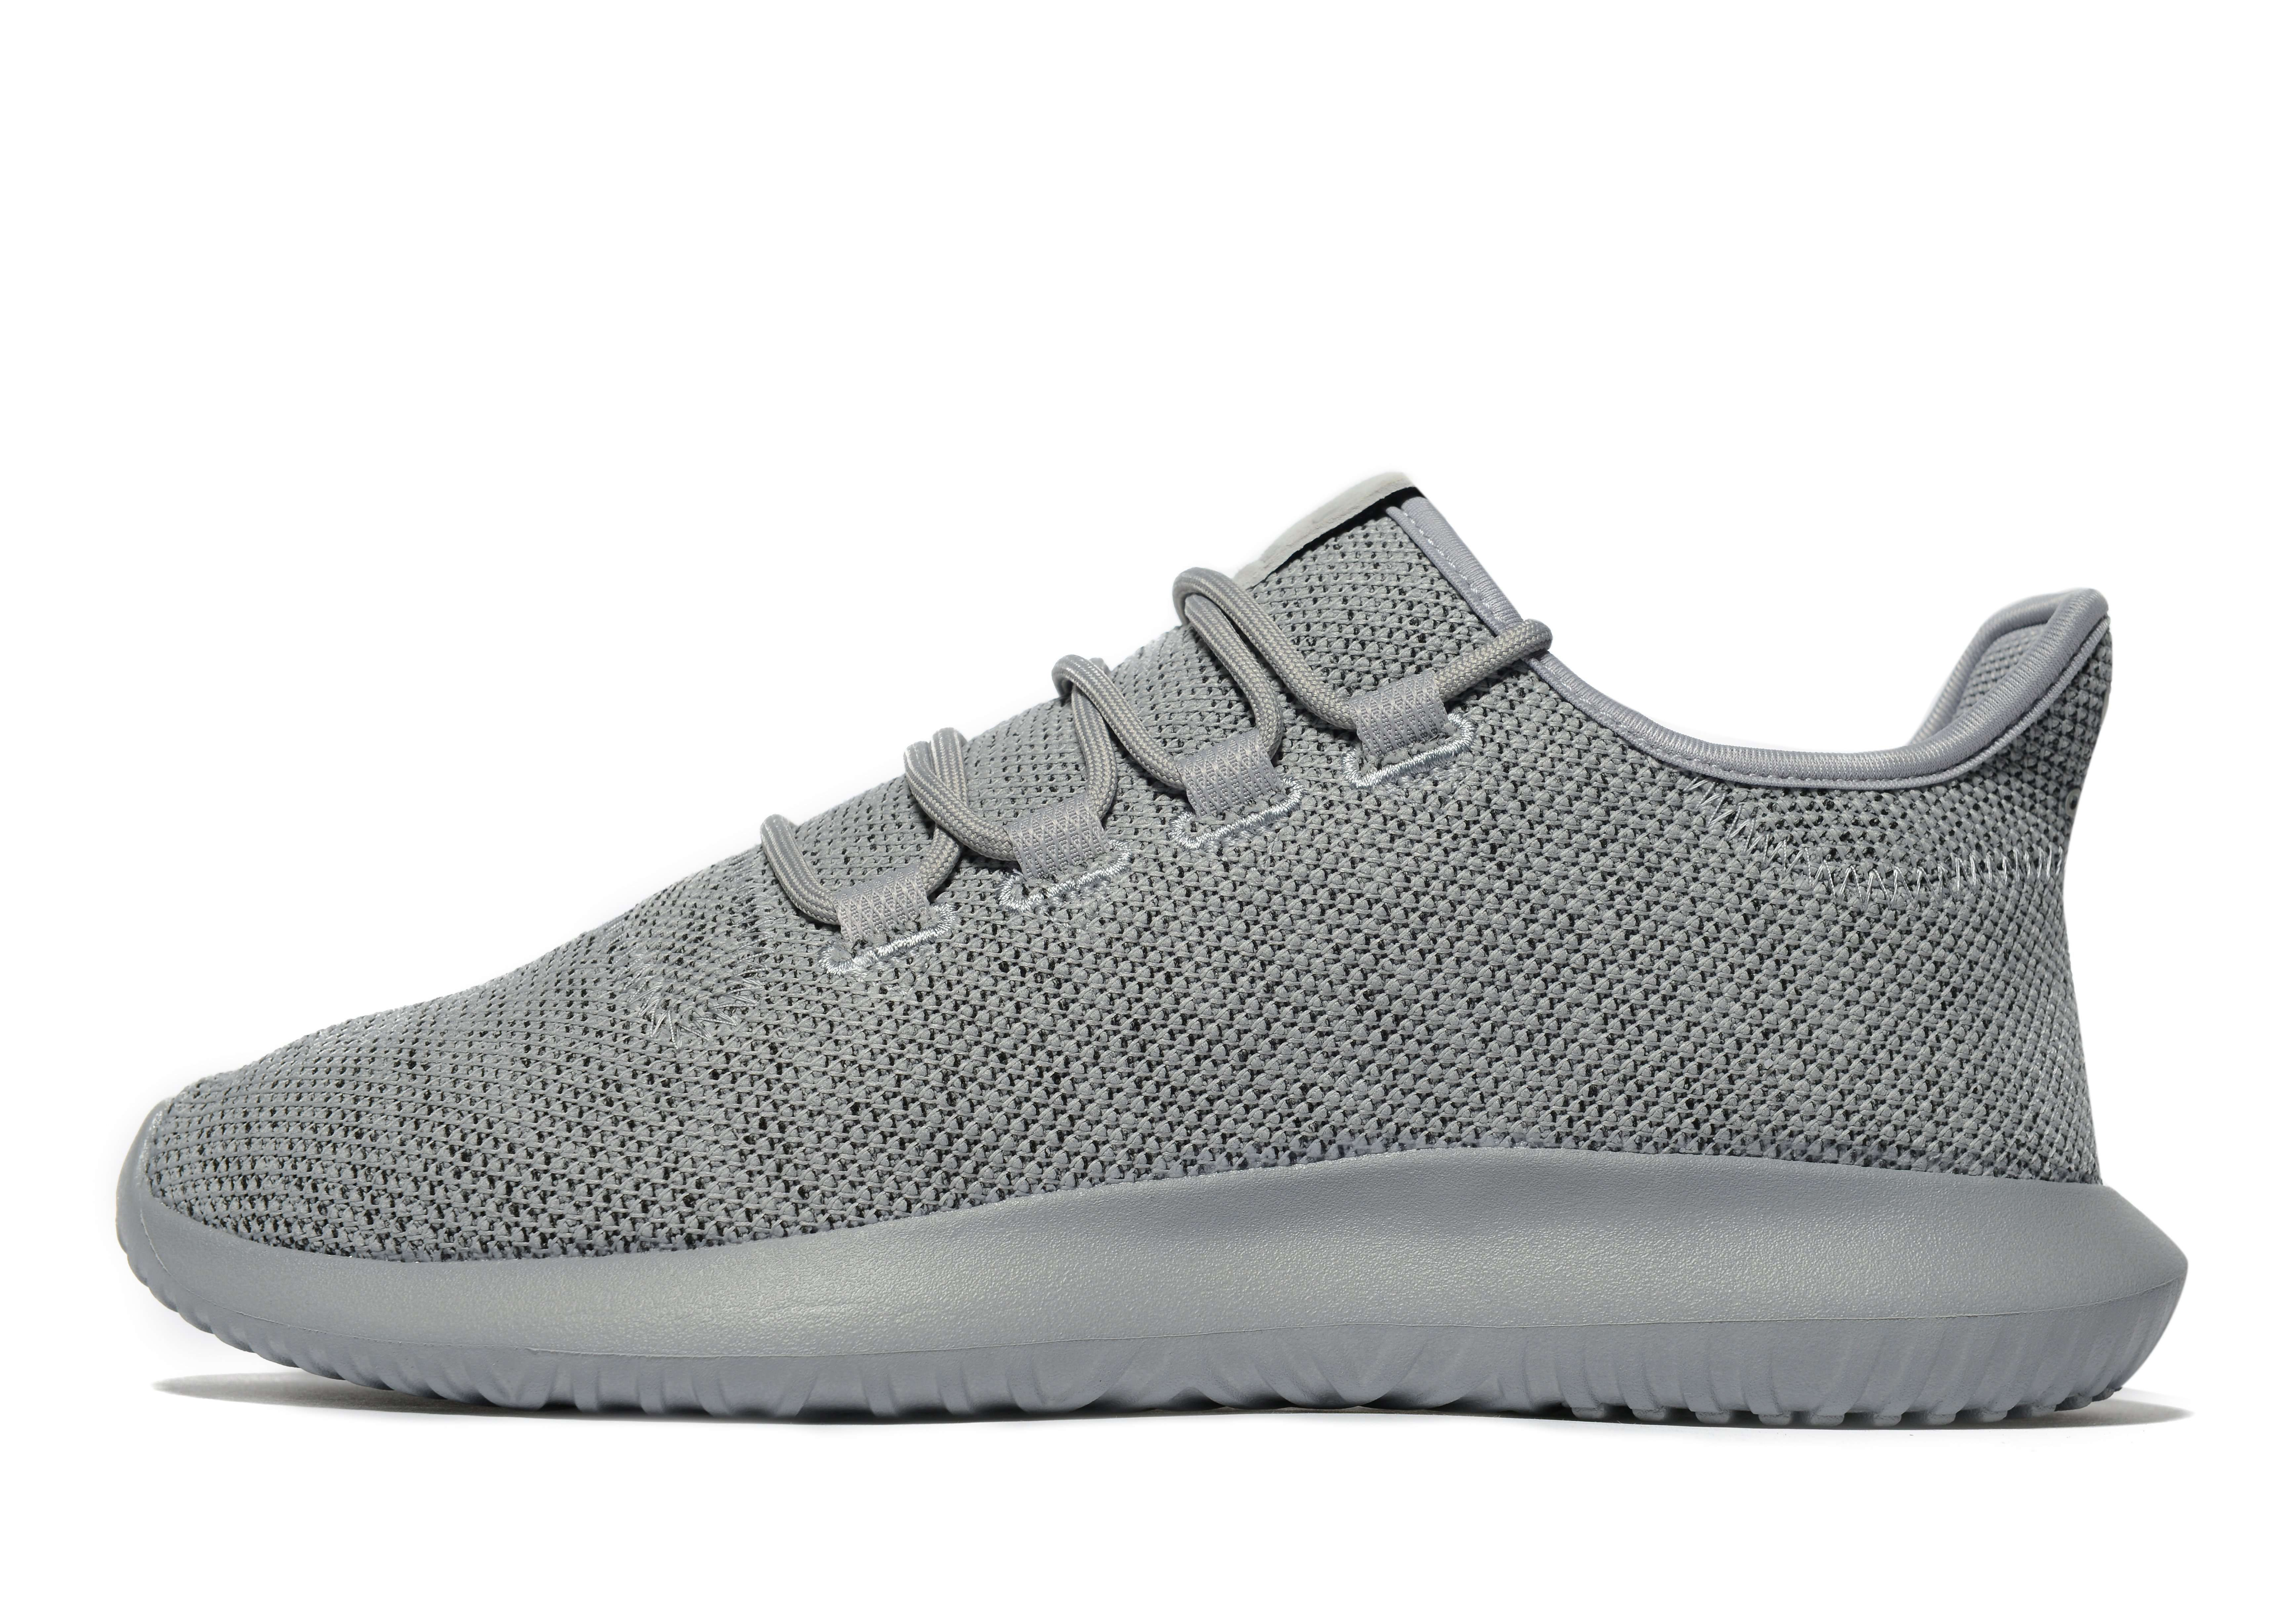 5460a1c2d46 adidas Originals Tubular Shadow - Shop online for adidas Originals Tubular  Shadow with JD Sports